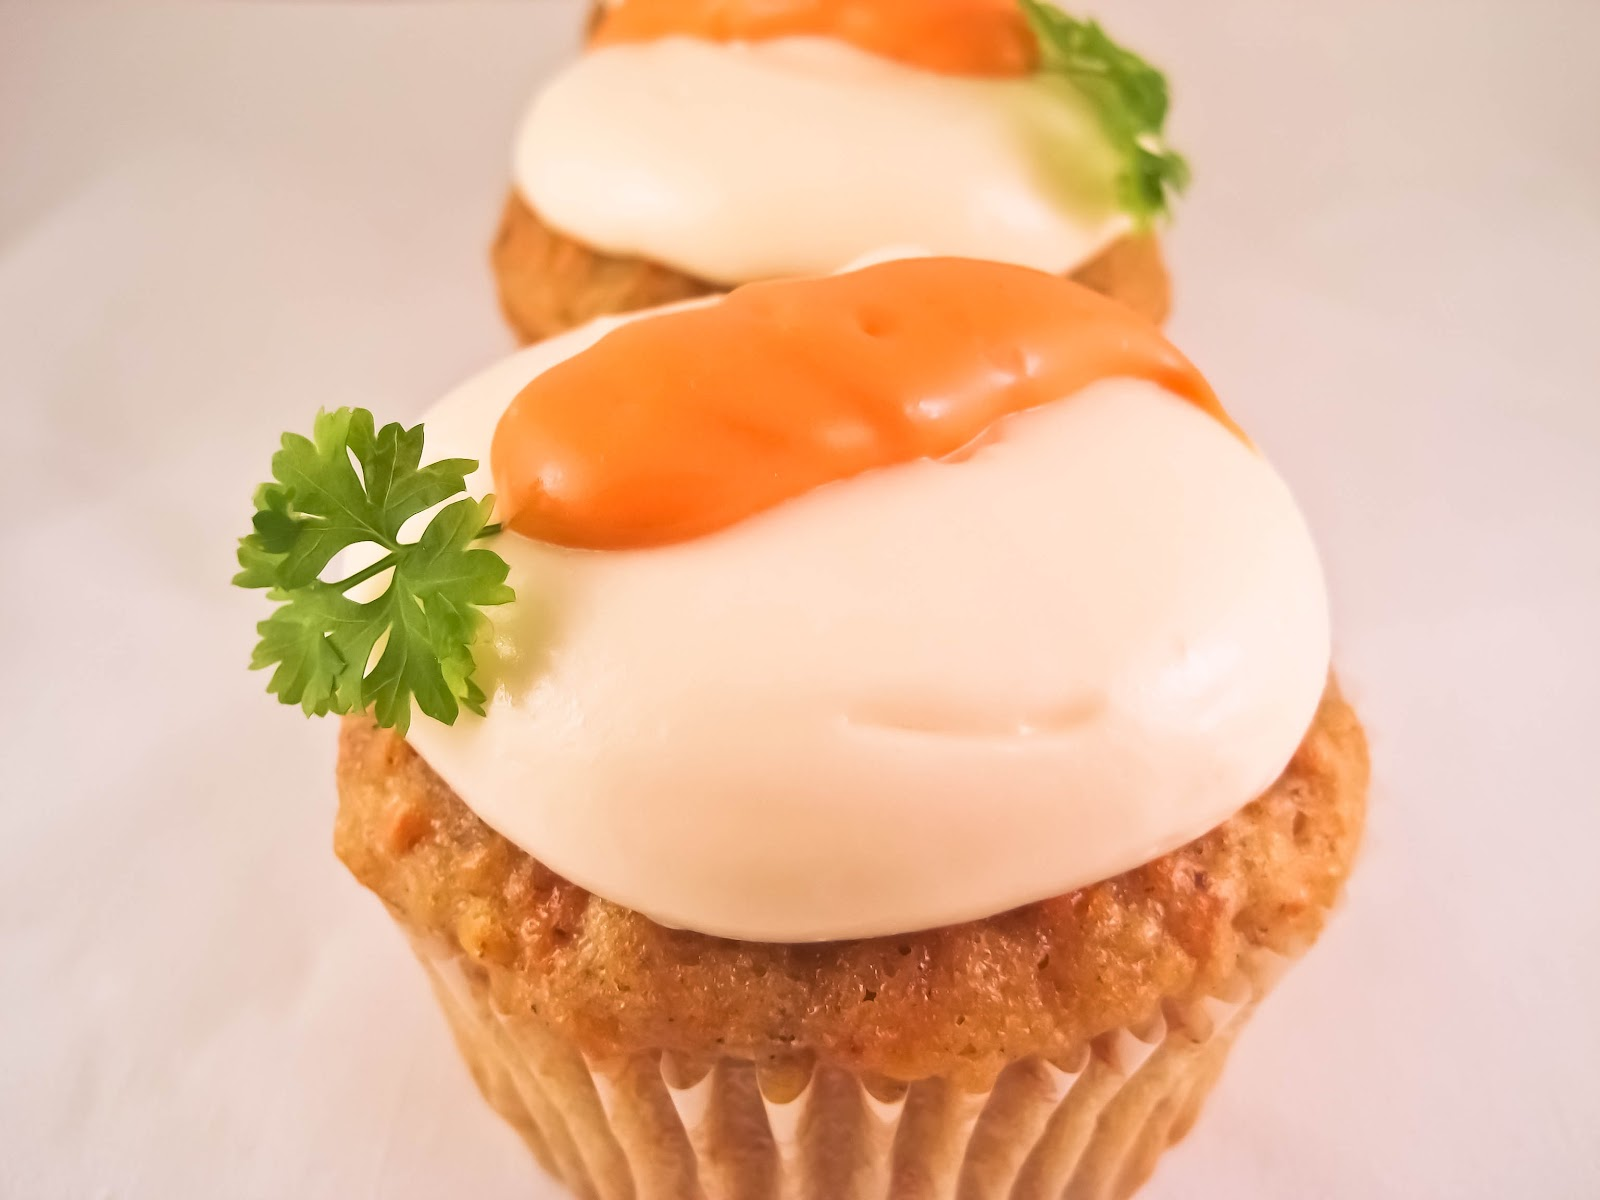 Kathleen's Confections: Spring Basket And Carrot Cake Recipe